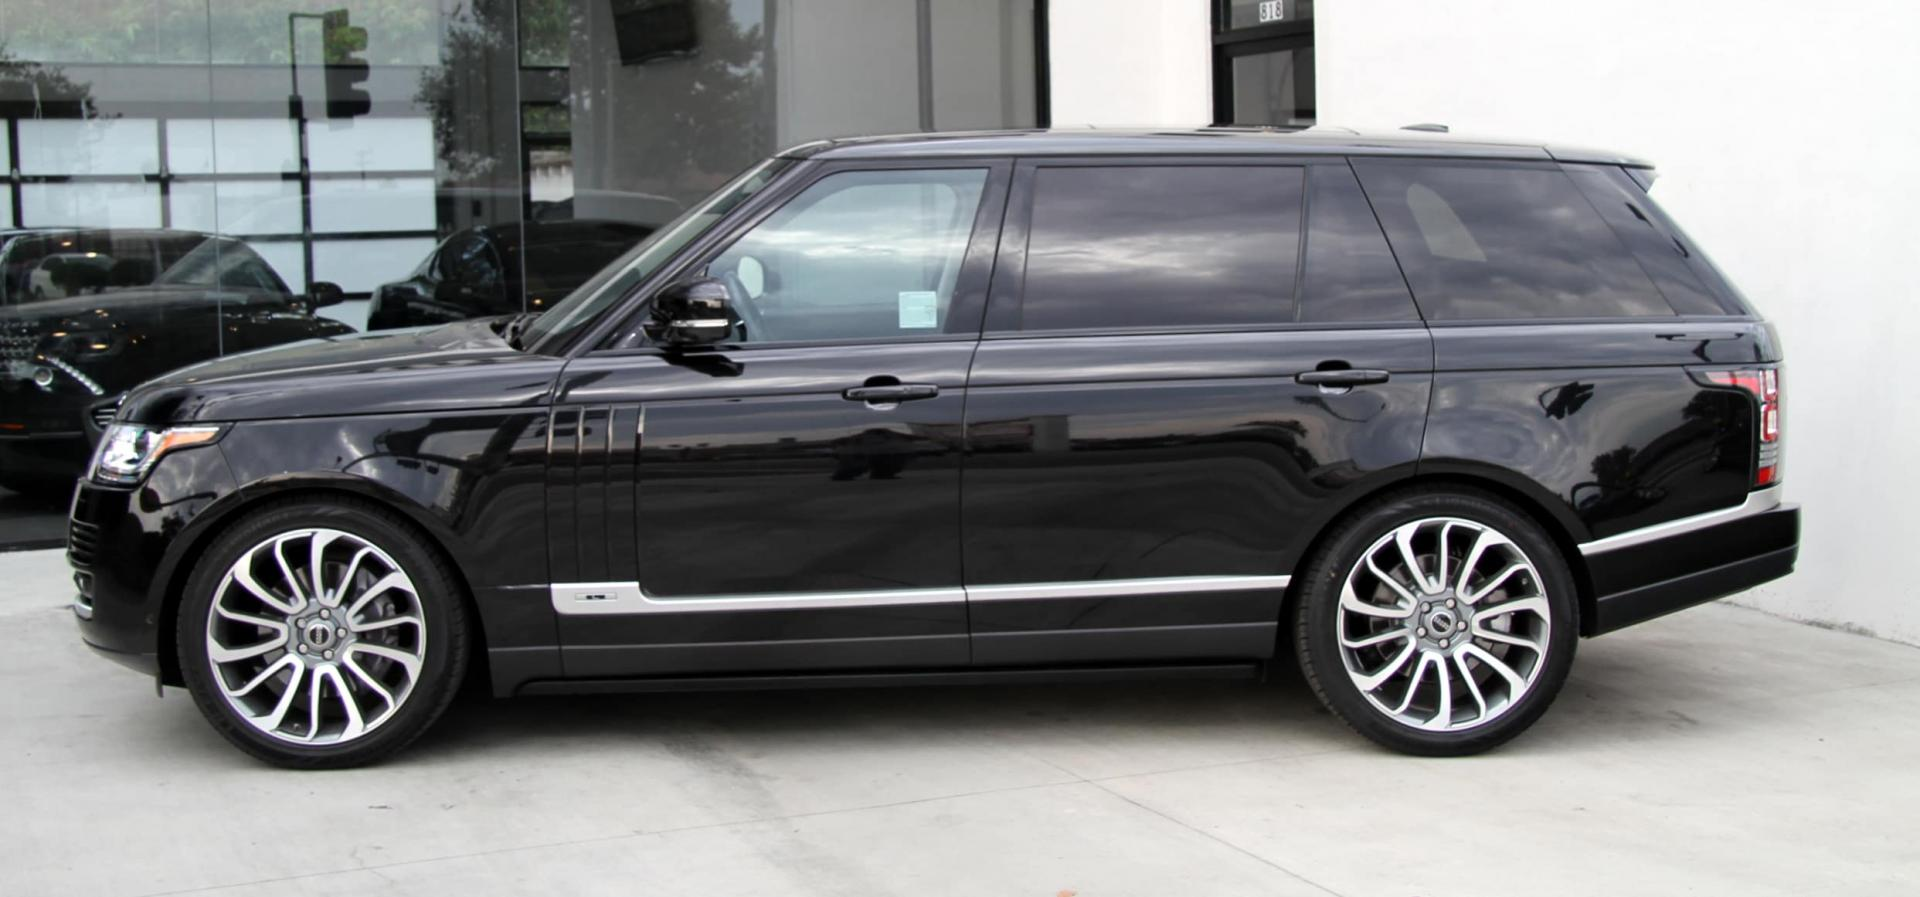 2015 land rover range rover supercharged long wheel for General motors dealers near me